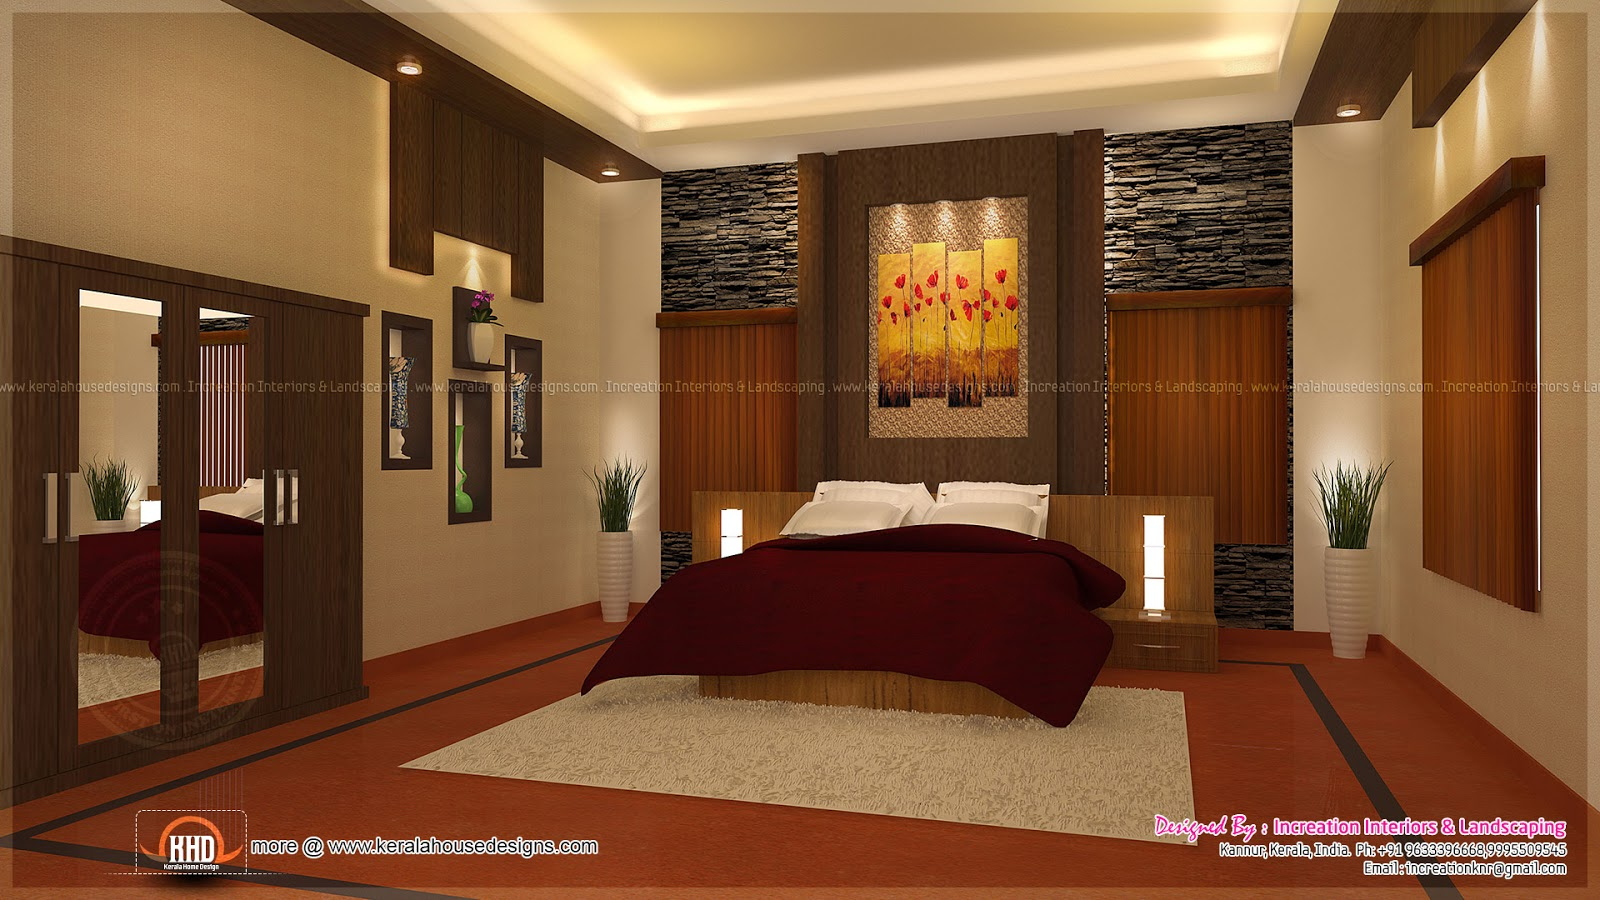 Master bedroom interior for Interior designs photos for home